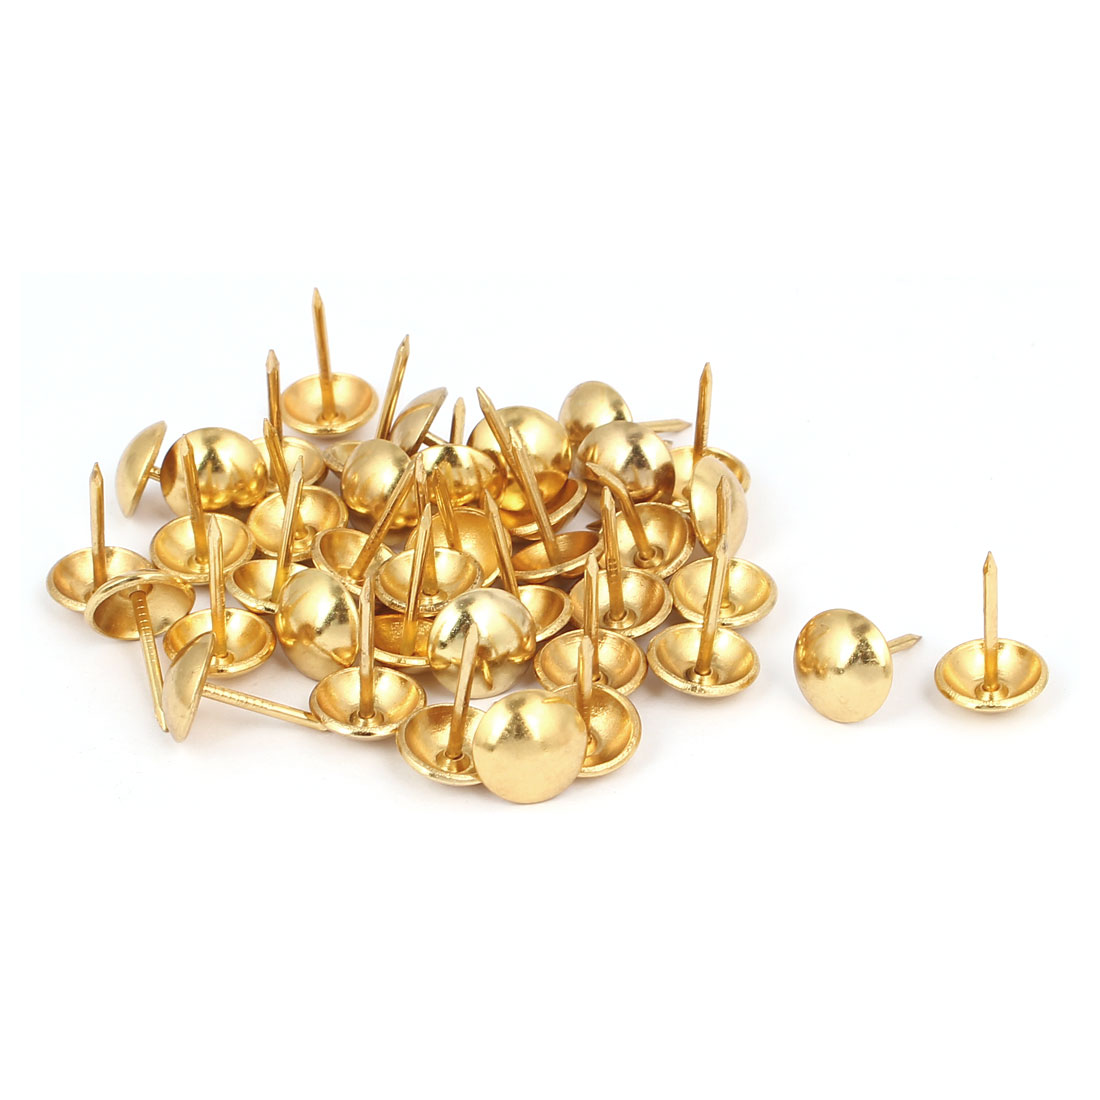 "7/16"" Head Dia 17mm Height Upholstery Tack Nail Push Pin Gold Tone 40pcs"